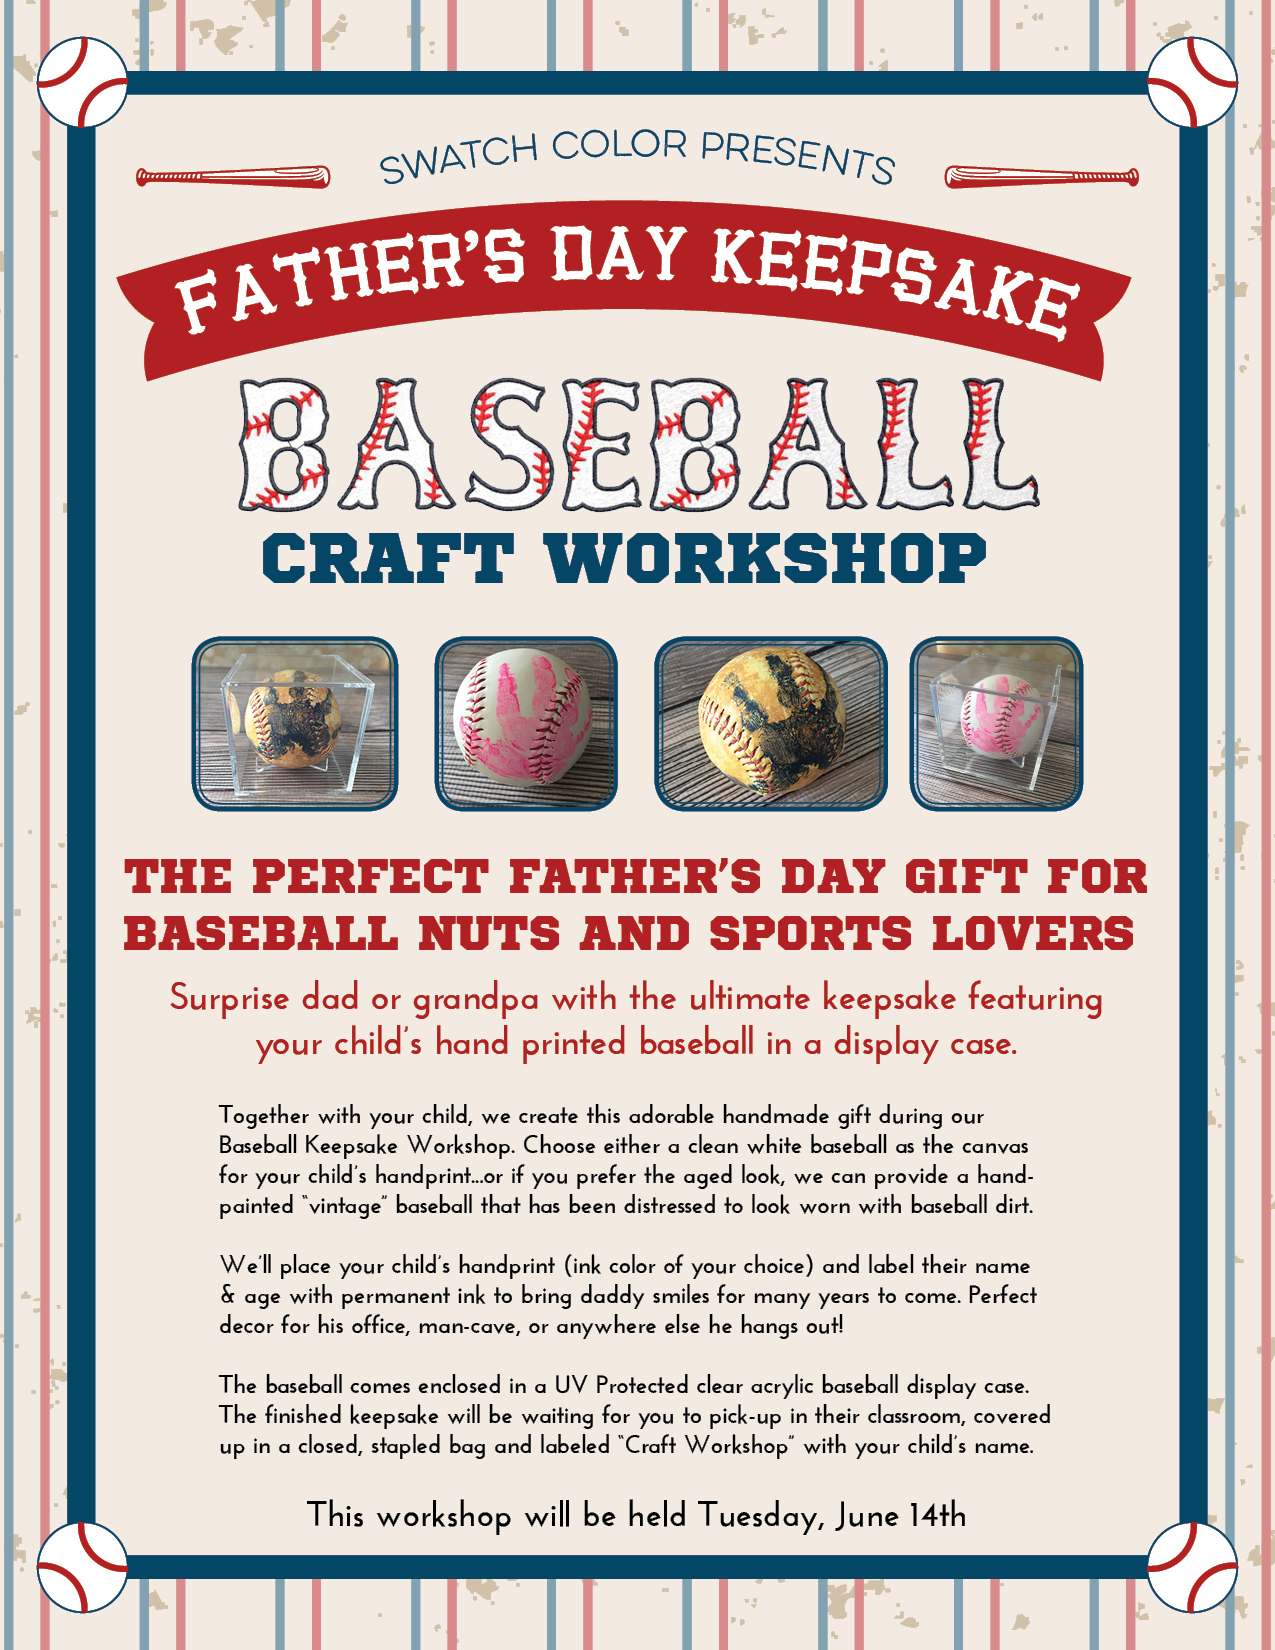 Baseball-keepsake-workshop-flyer